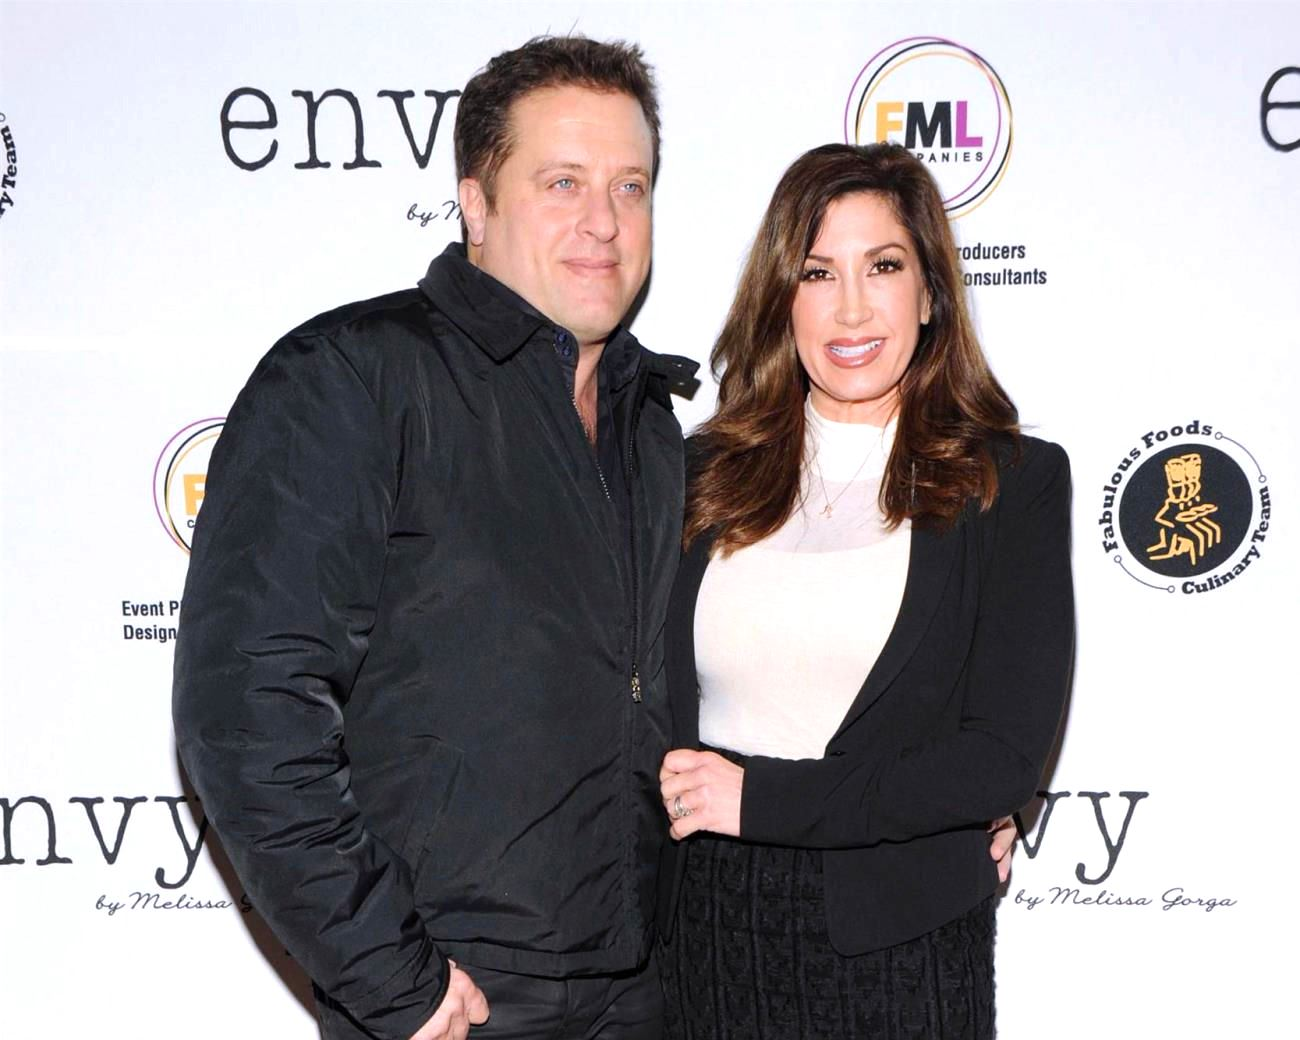 Ex Rhonj Star Jacqueline Laurita And Husband Chris Sell Belongings On Facebook As They Face Foreclosure